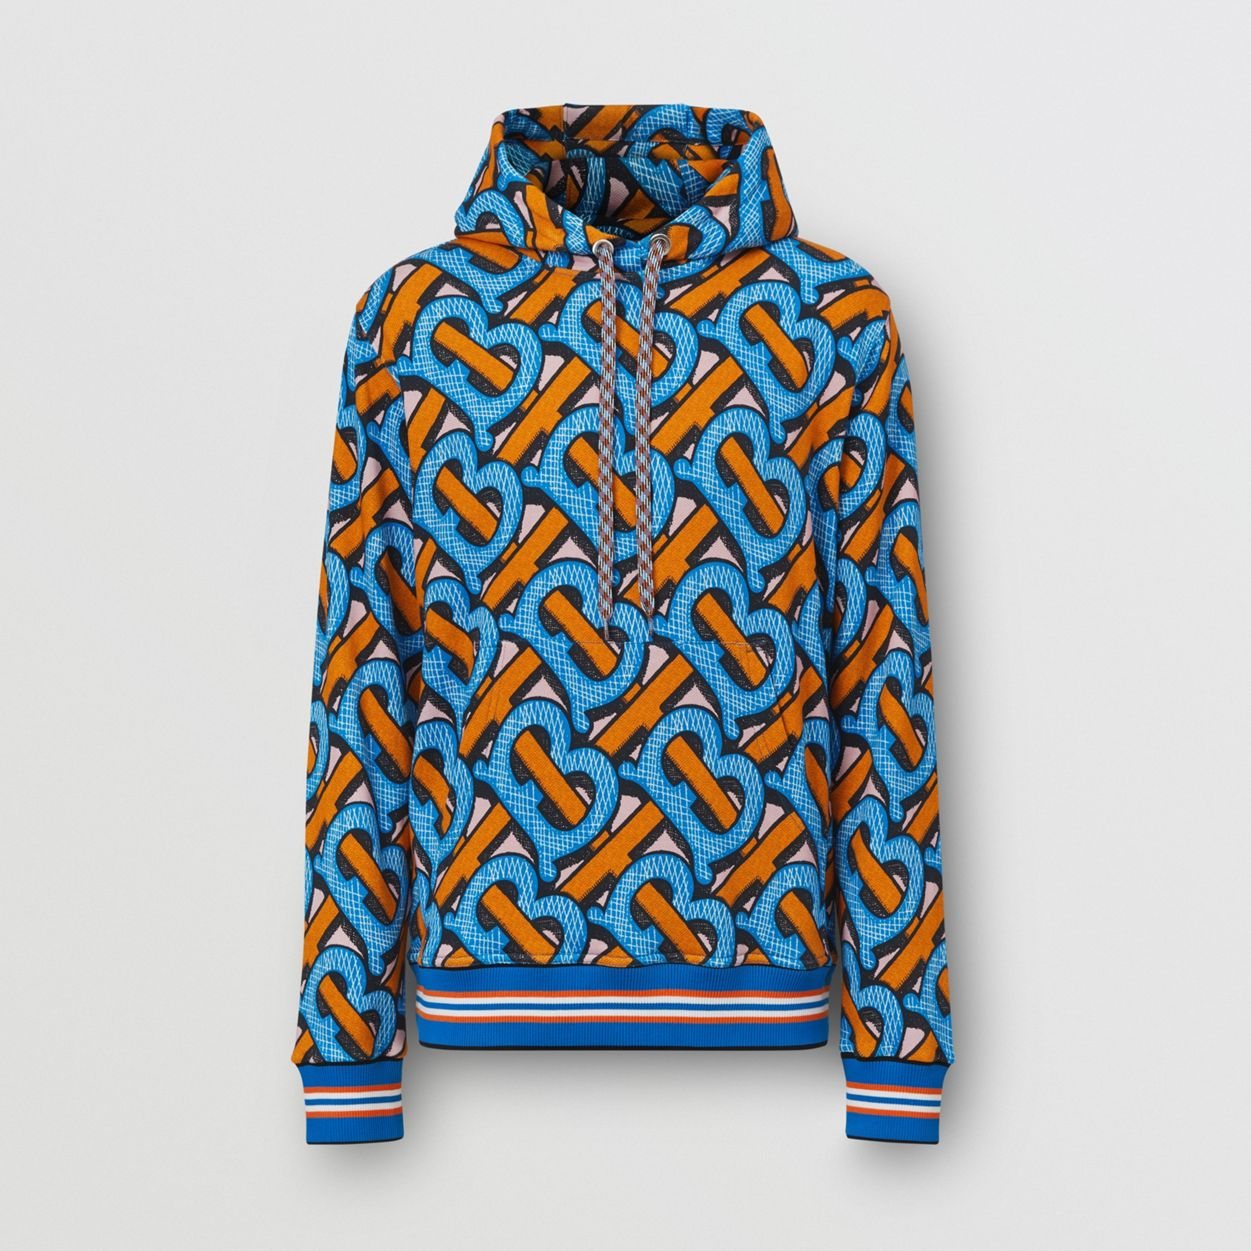 Monogram Print Cotton Hoodie by Burberry, available on burberry.com for EUR690 Kendall Jenner Top Exact Product